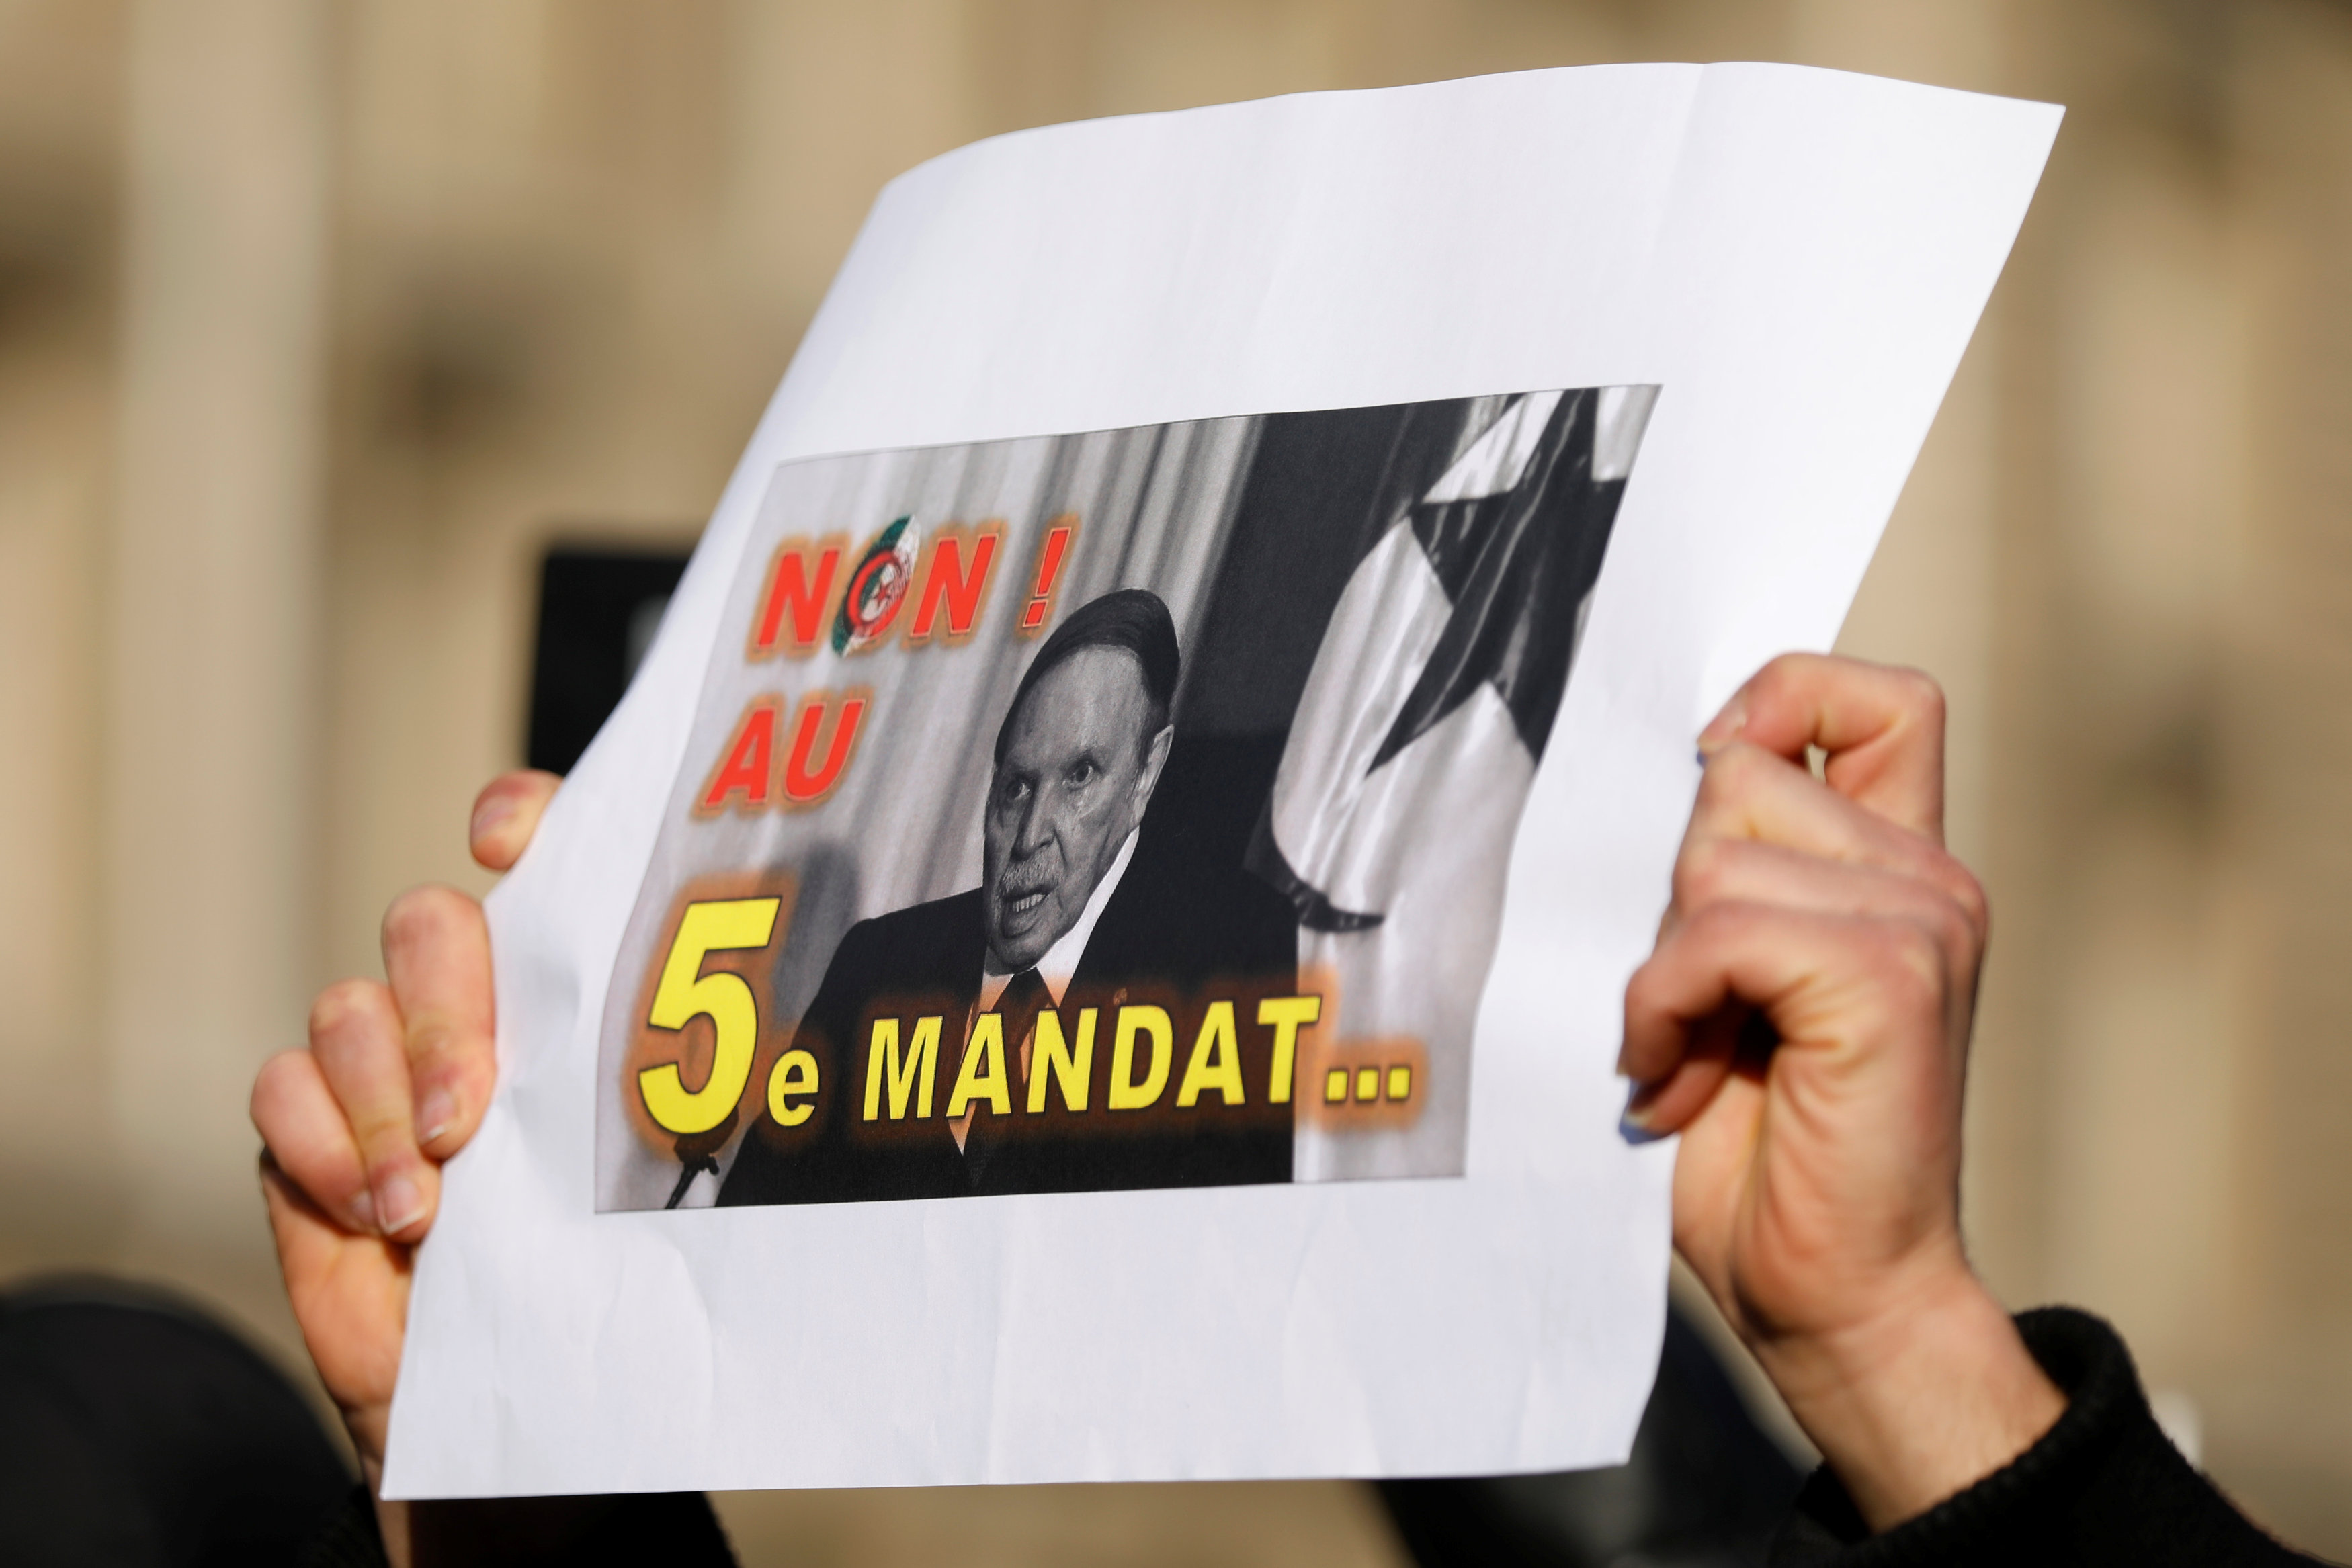 A demonstrator holds up a placard during a protest against President Abdelaziz Bouteflika seeking a fifth term (Reuters)